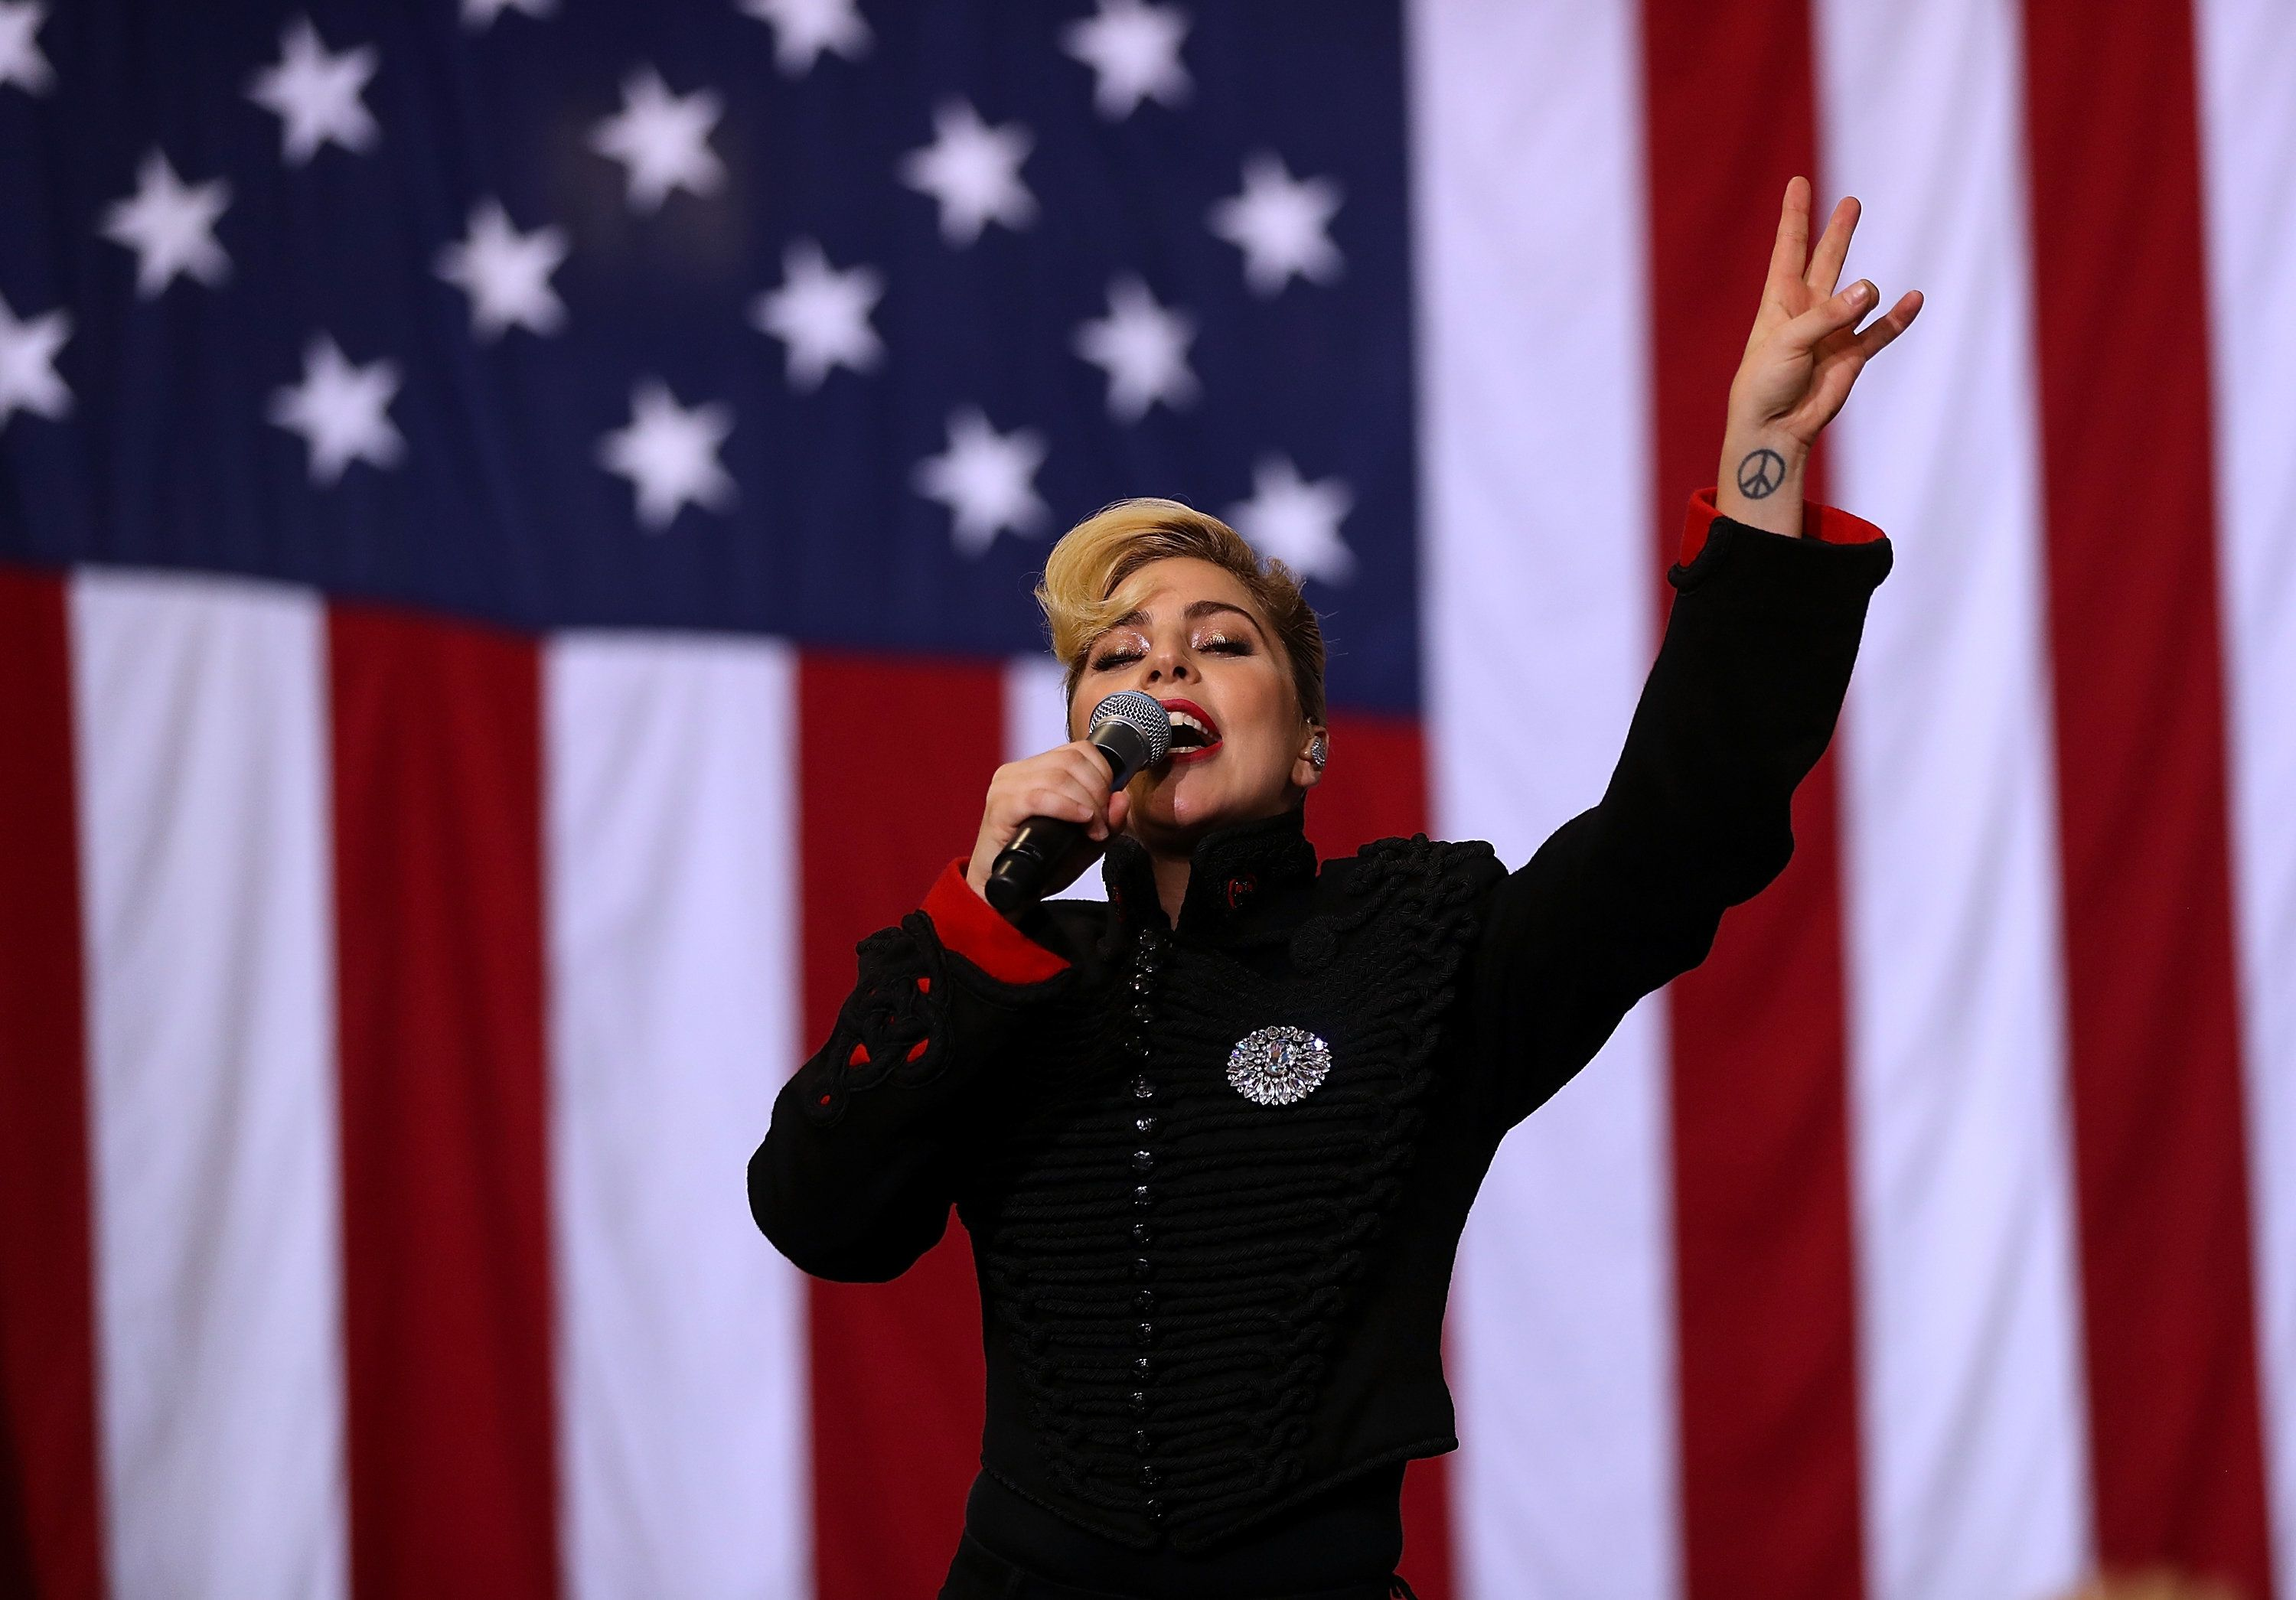 Image result for lady ga ga nazi salute